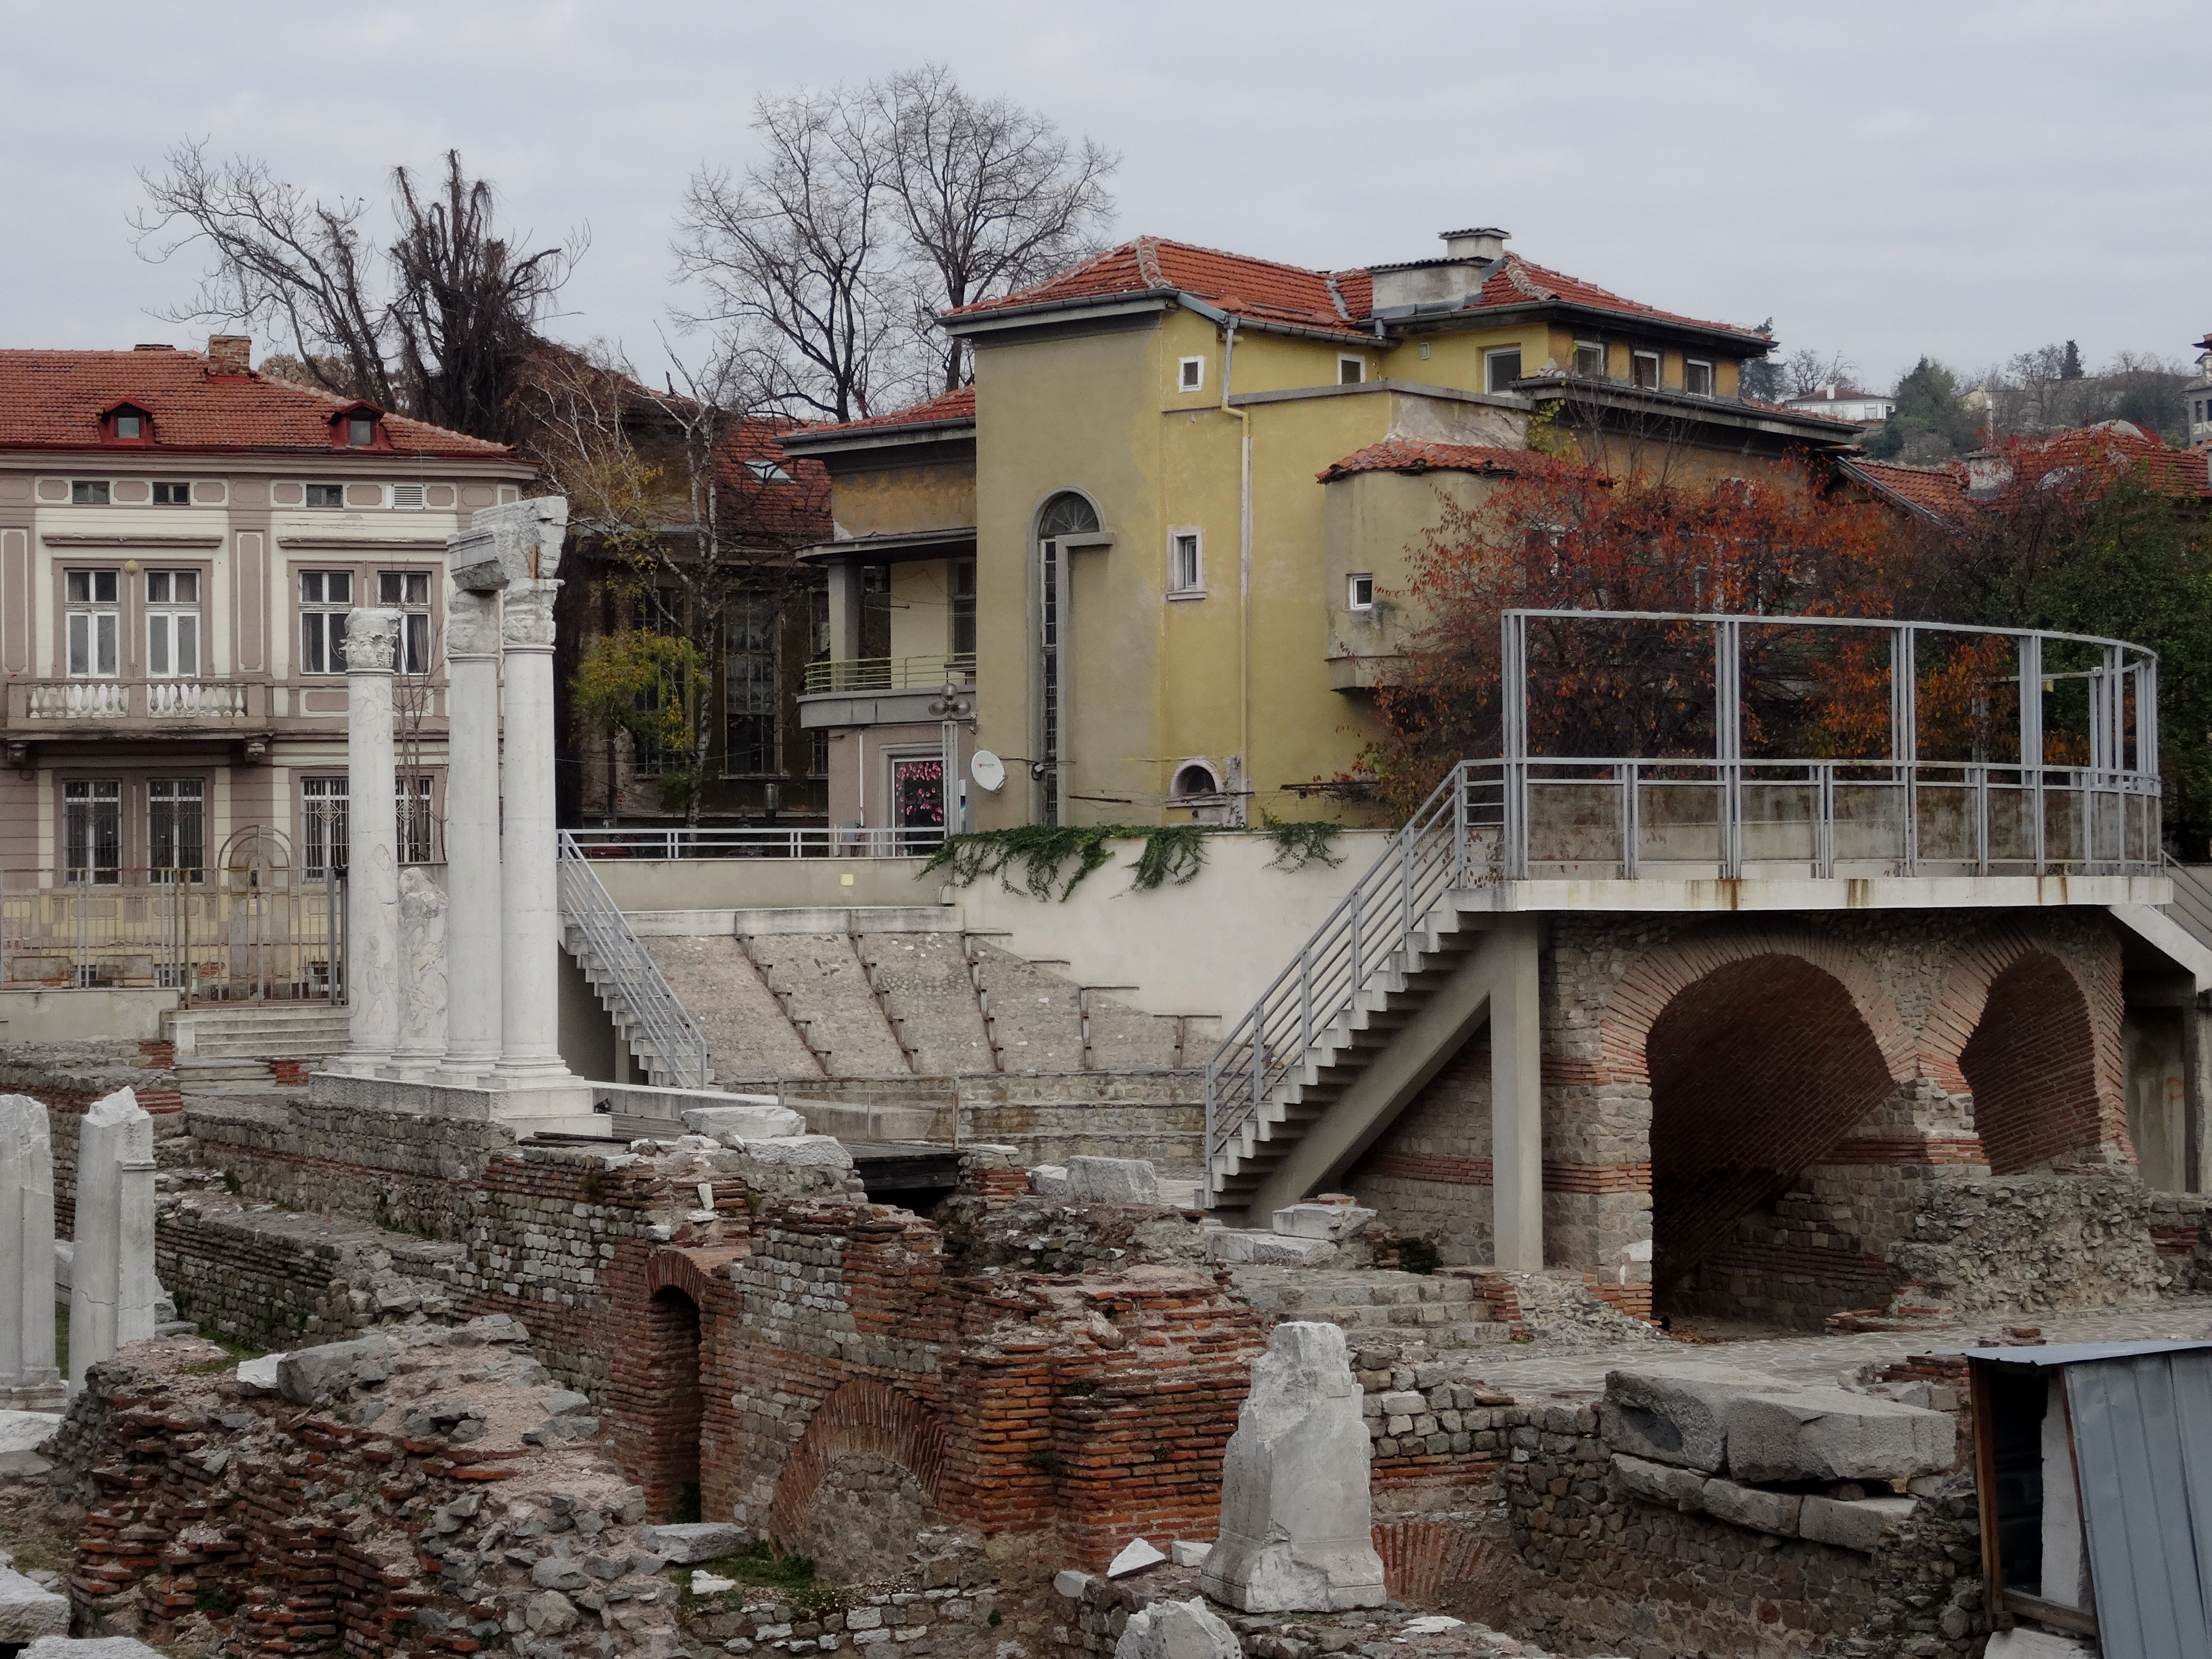 plovdiv oldest city world